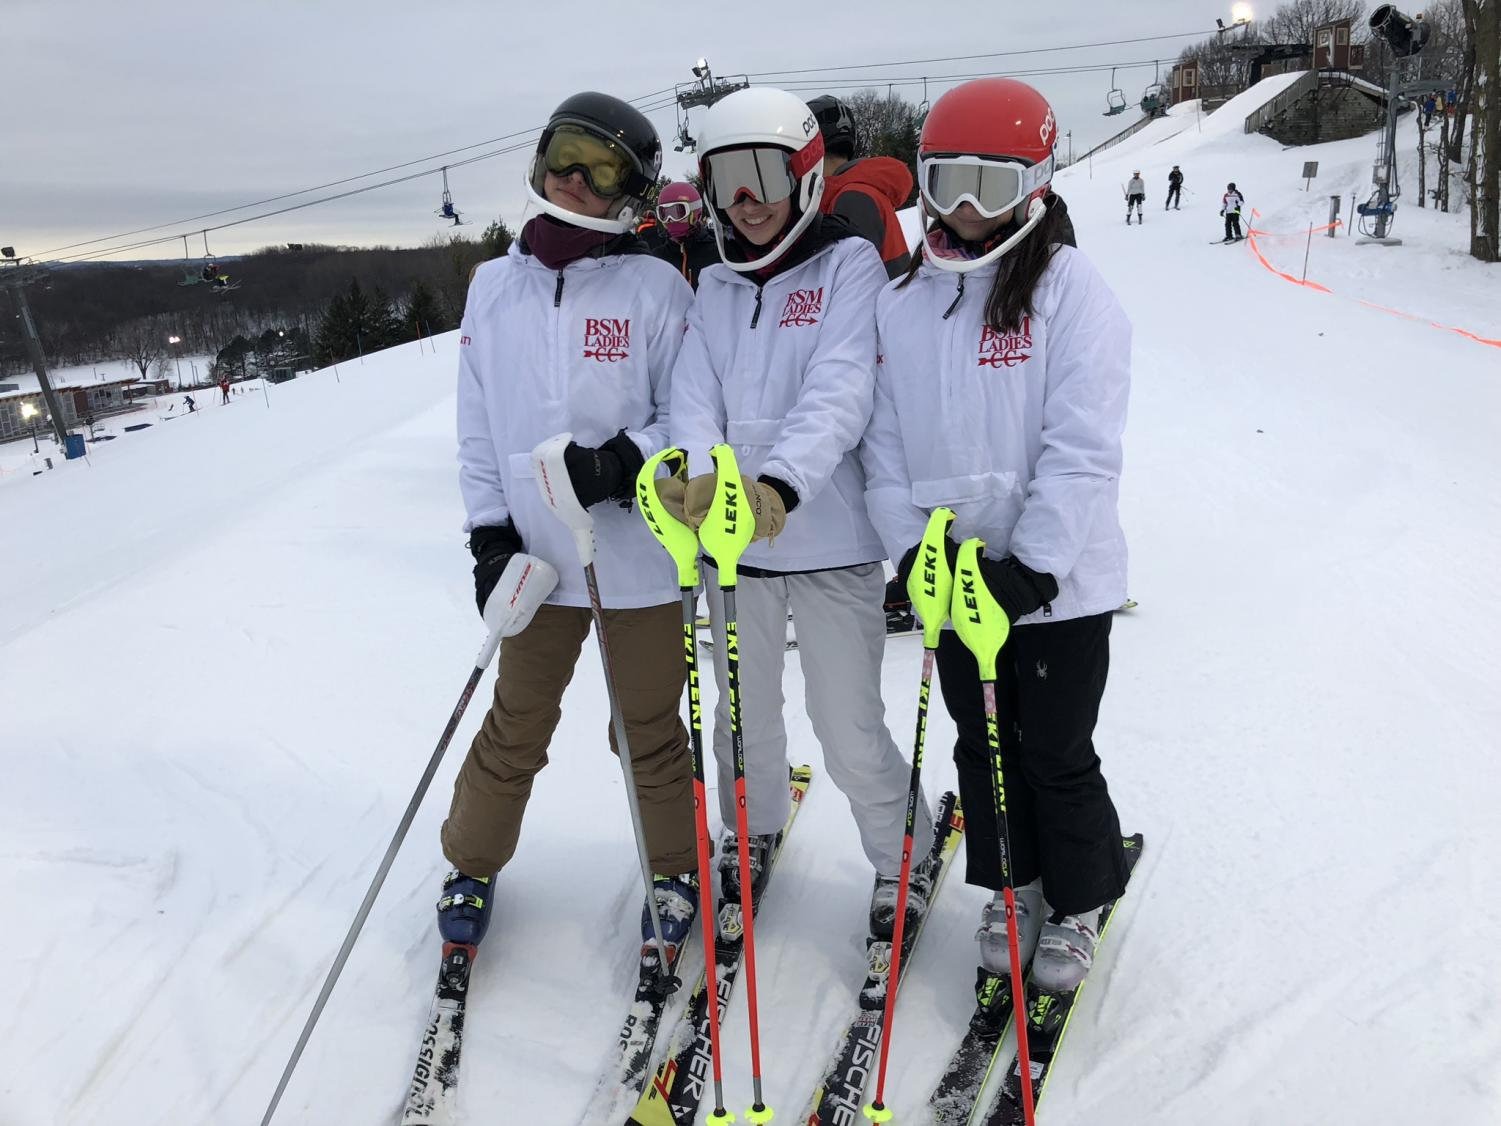 Alpine ski team preparing for upcoming races.